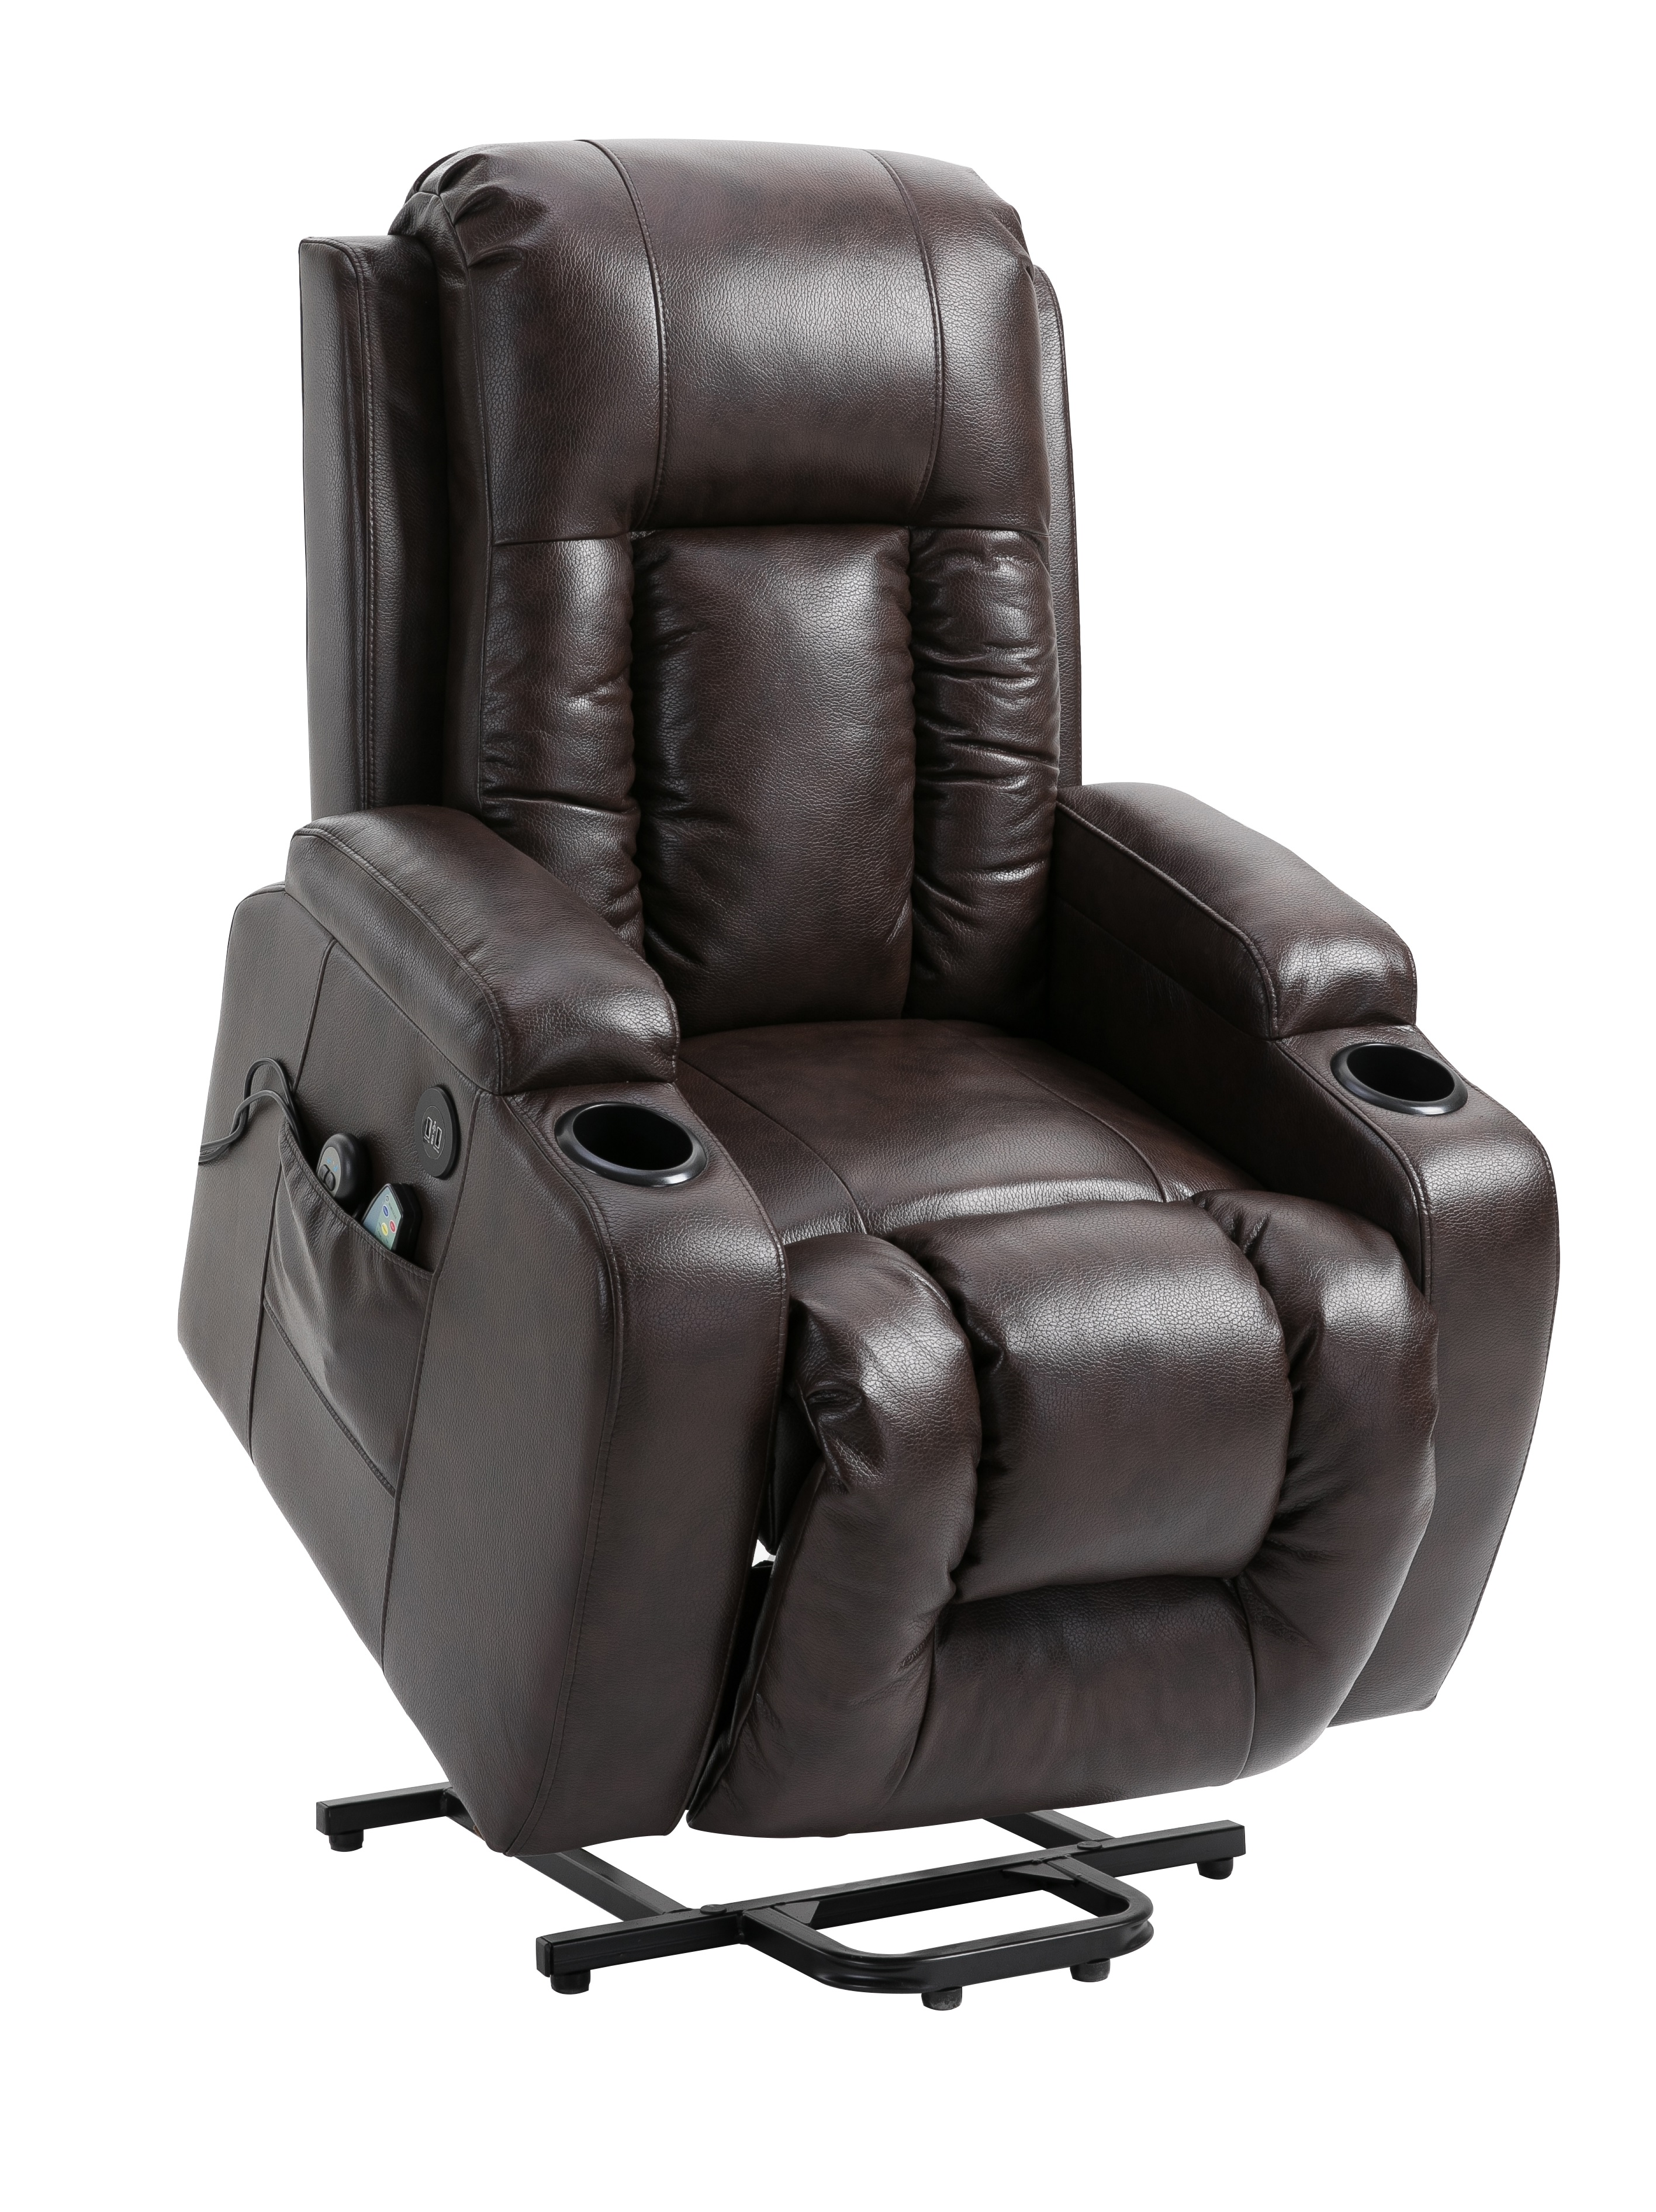 new air leather power lift recliner massage chair heated w massage rh unclewiener com